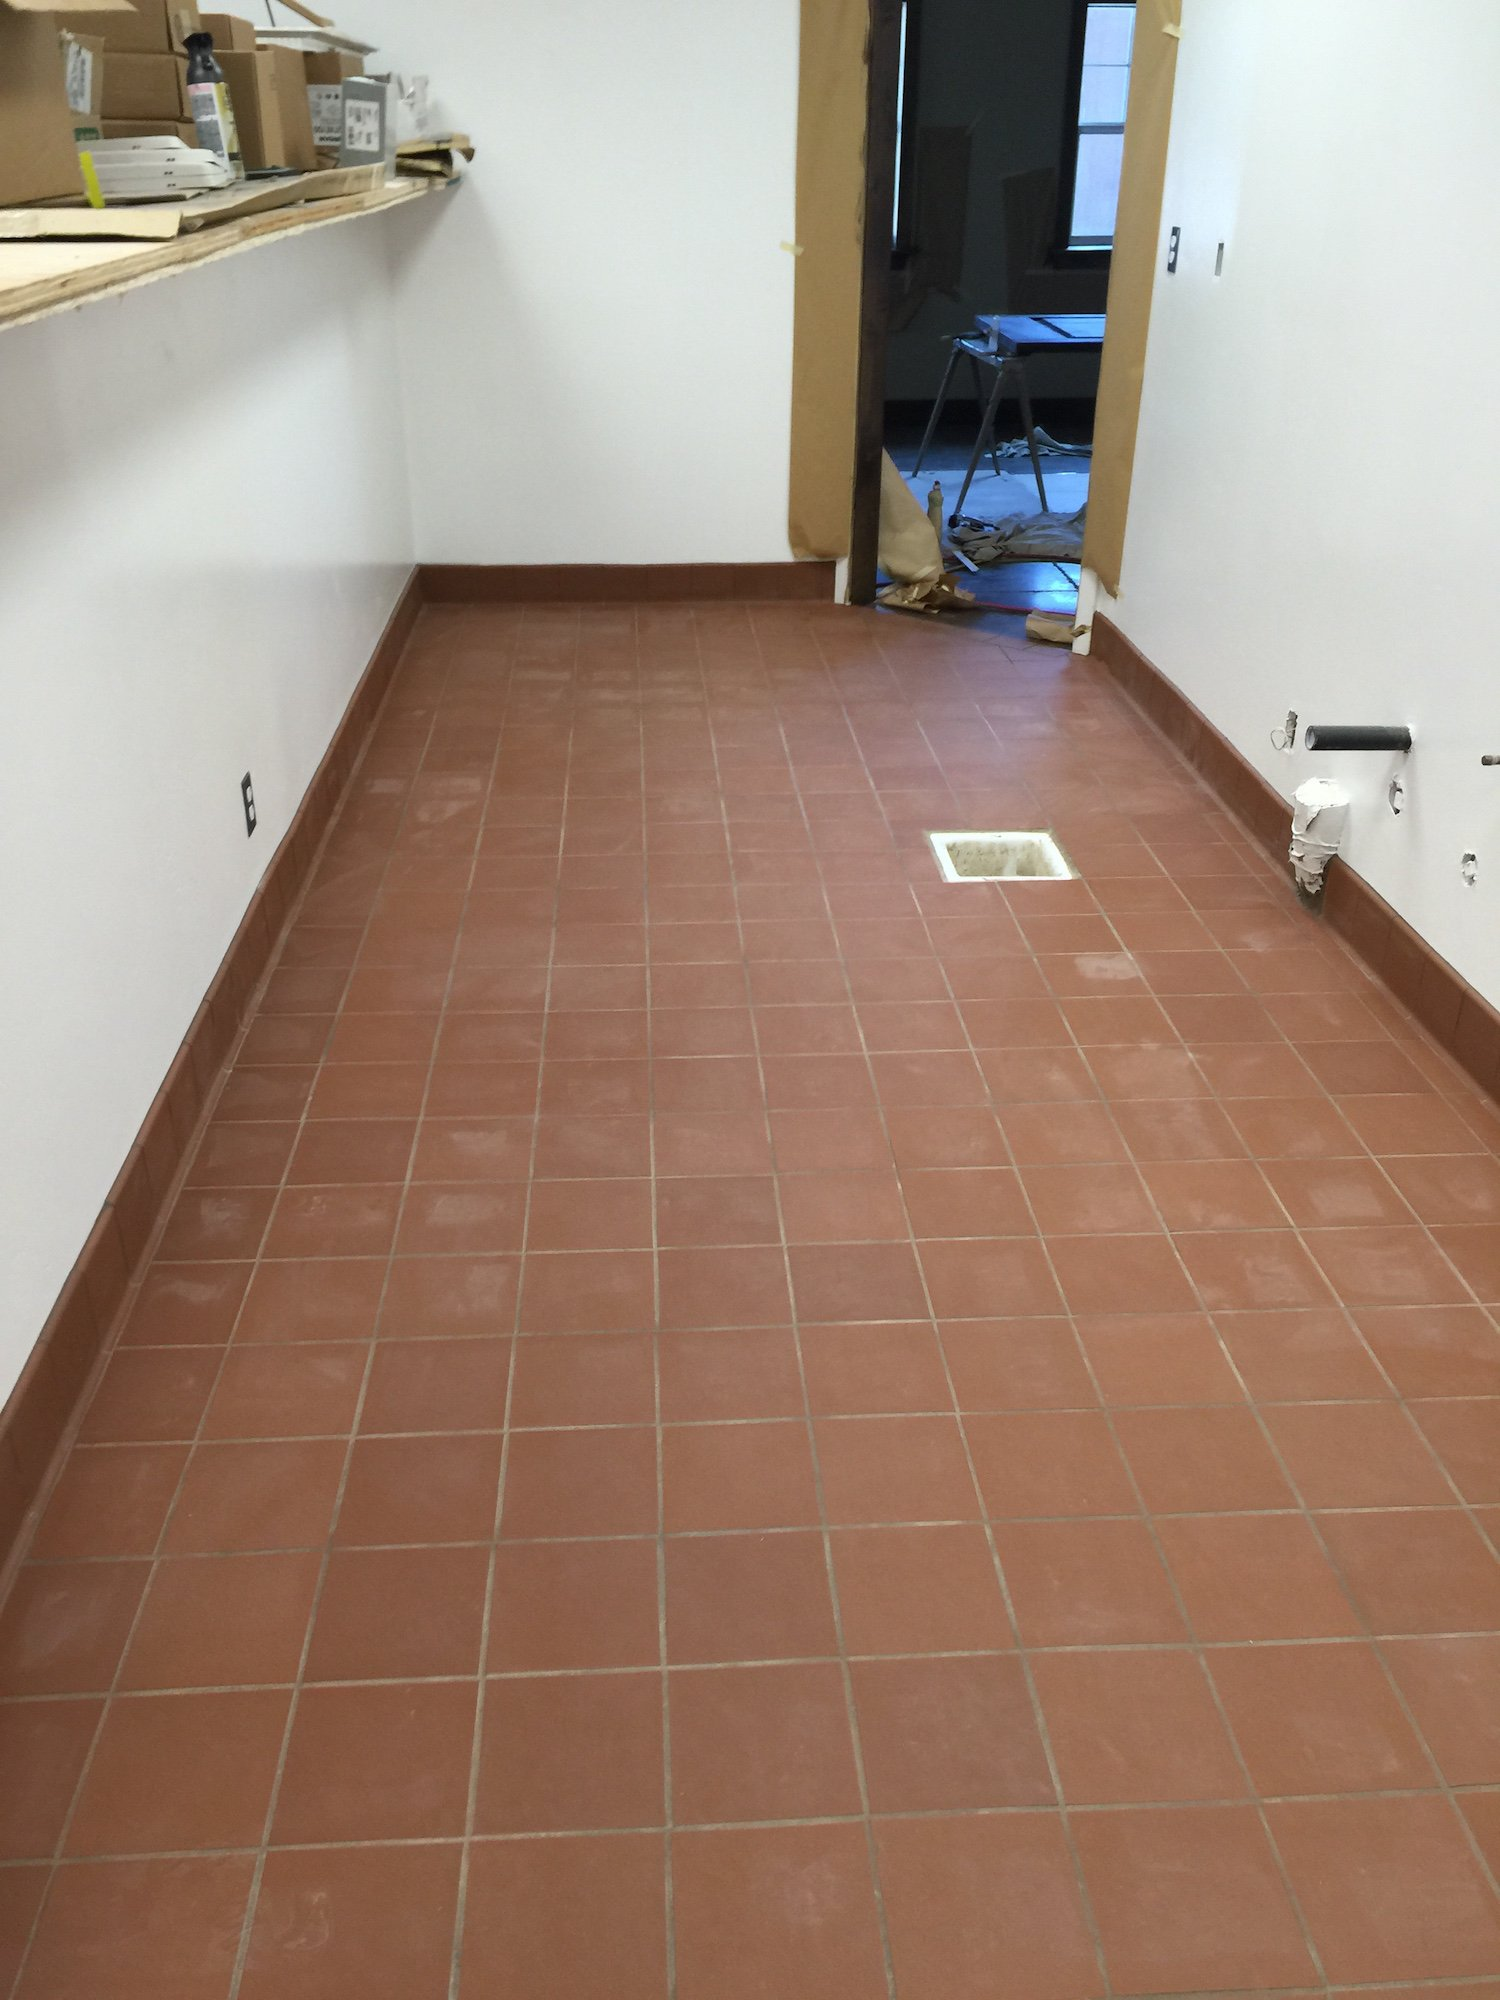 Tile Floor Cleaning Sacramento Before